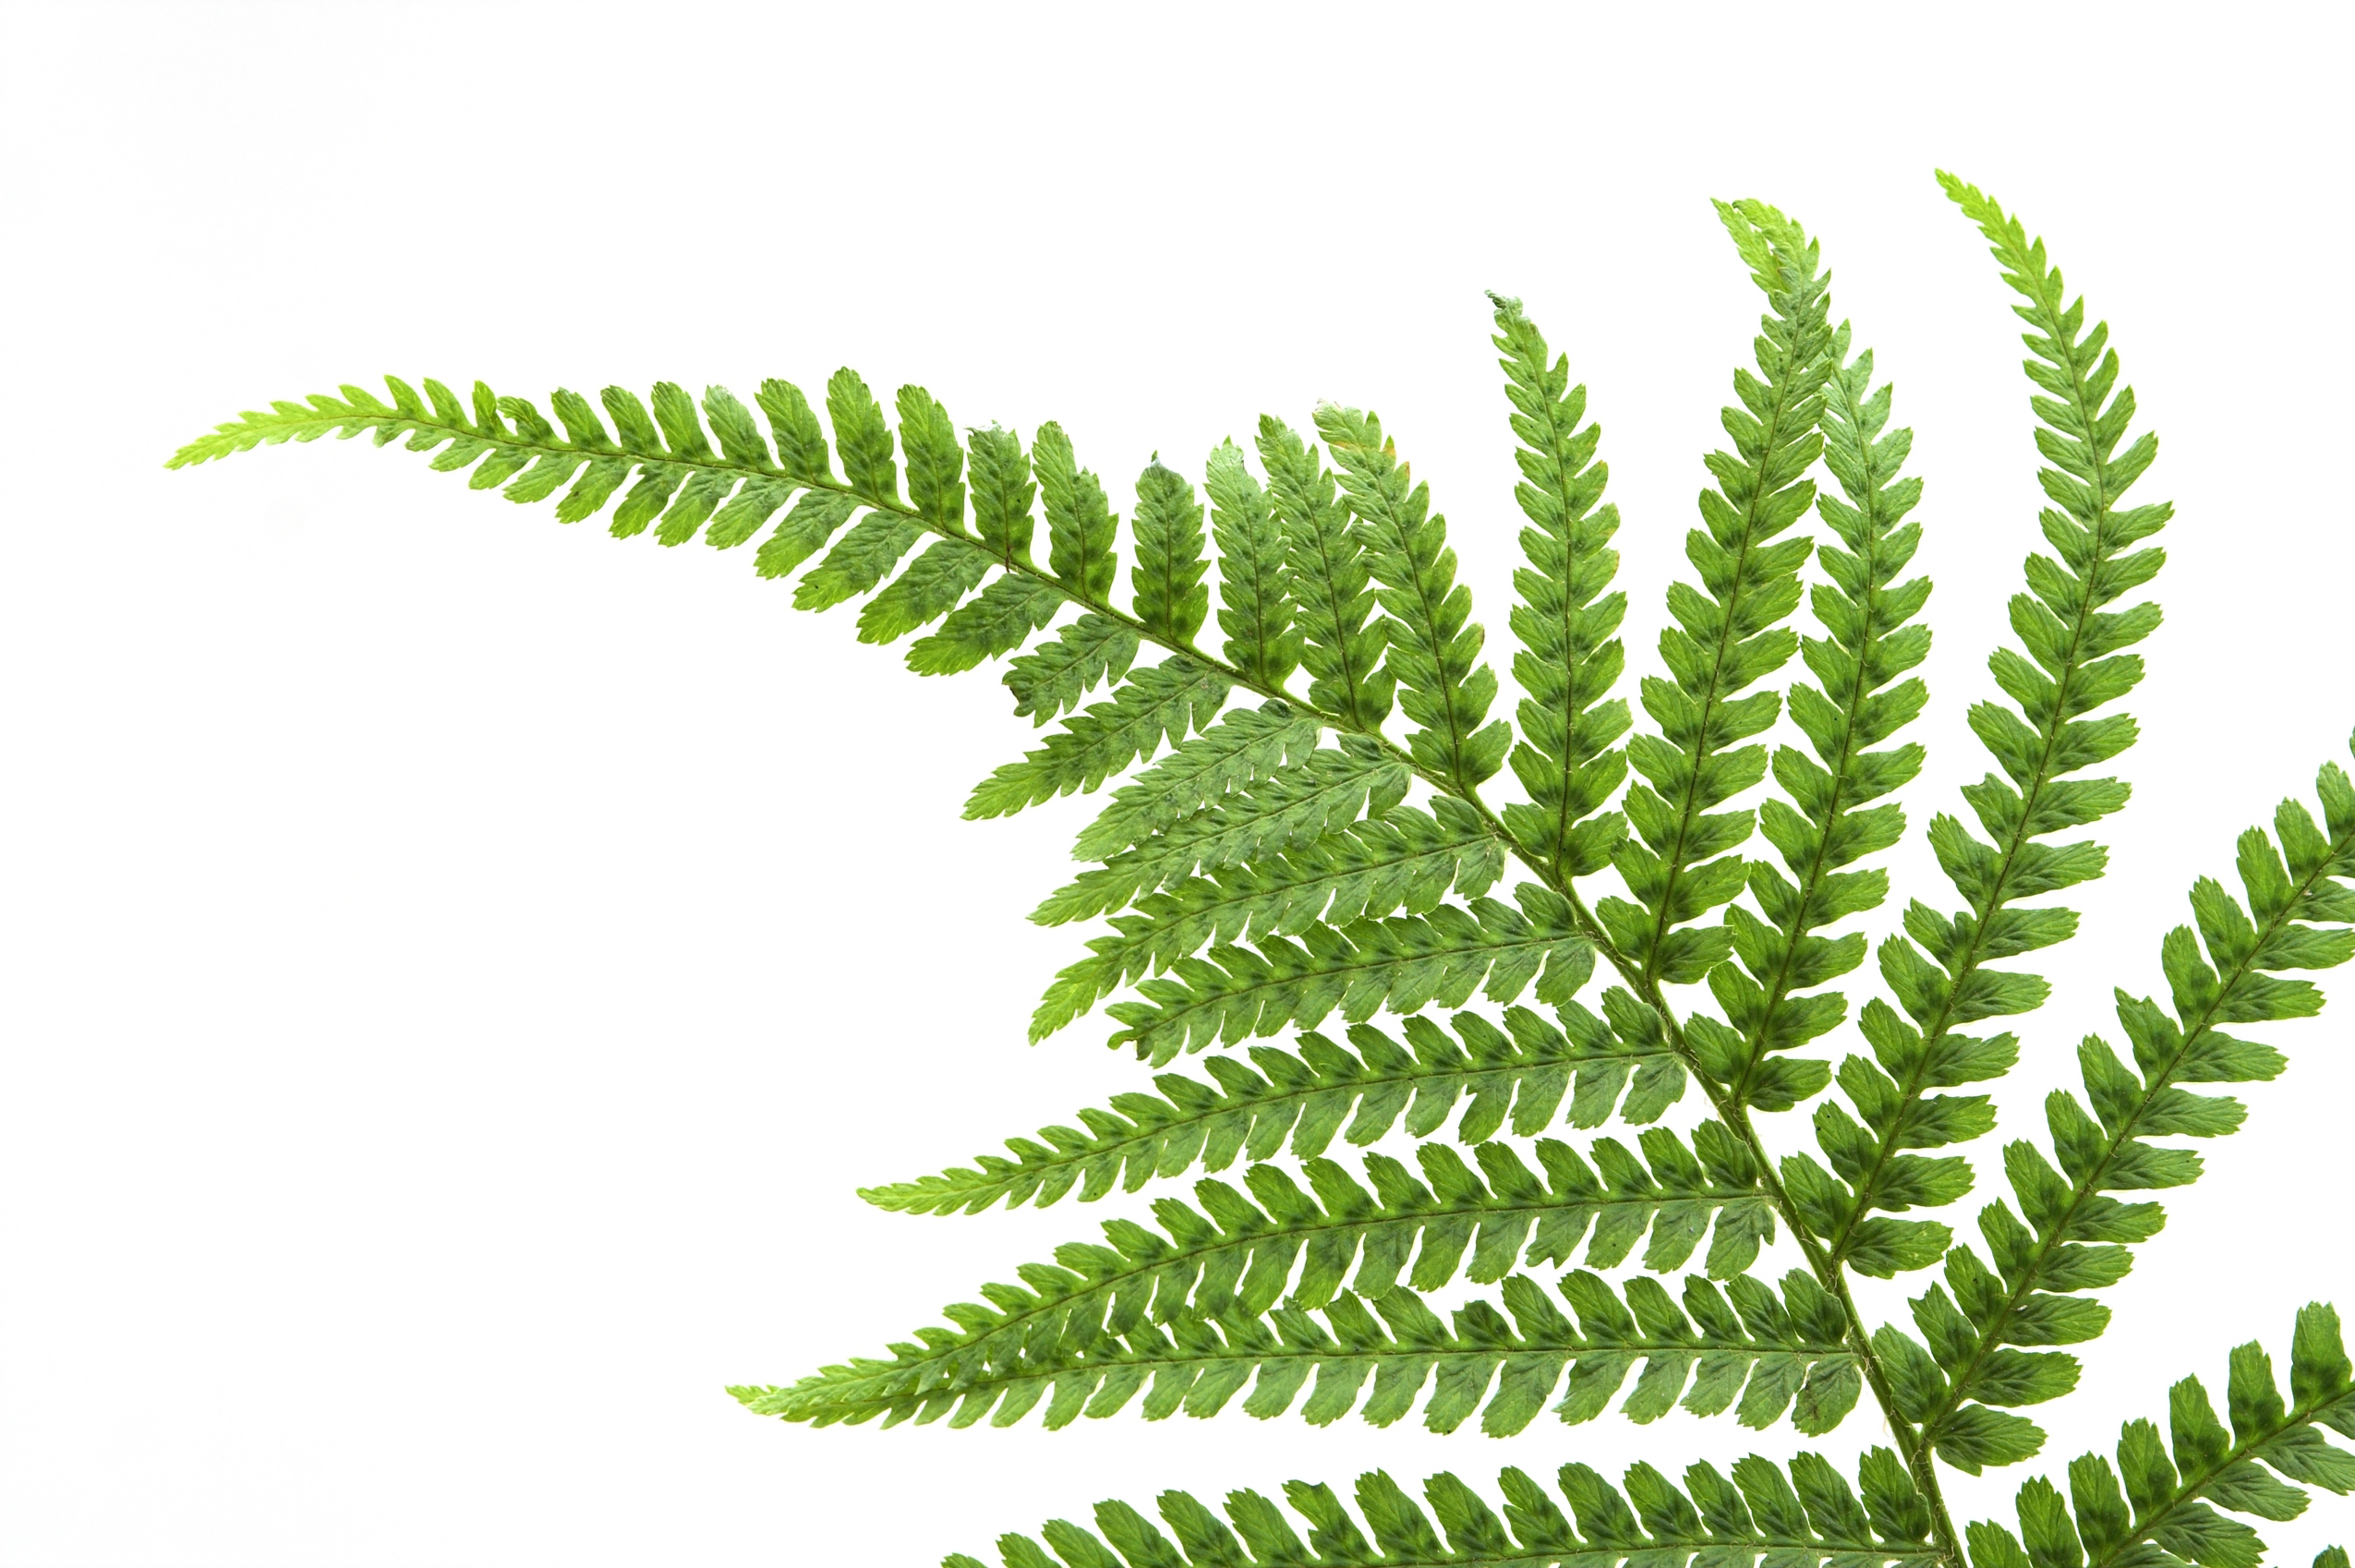 Fern Leaf Wallpaper 517.98 Kb